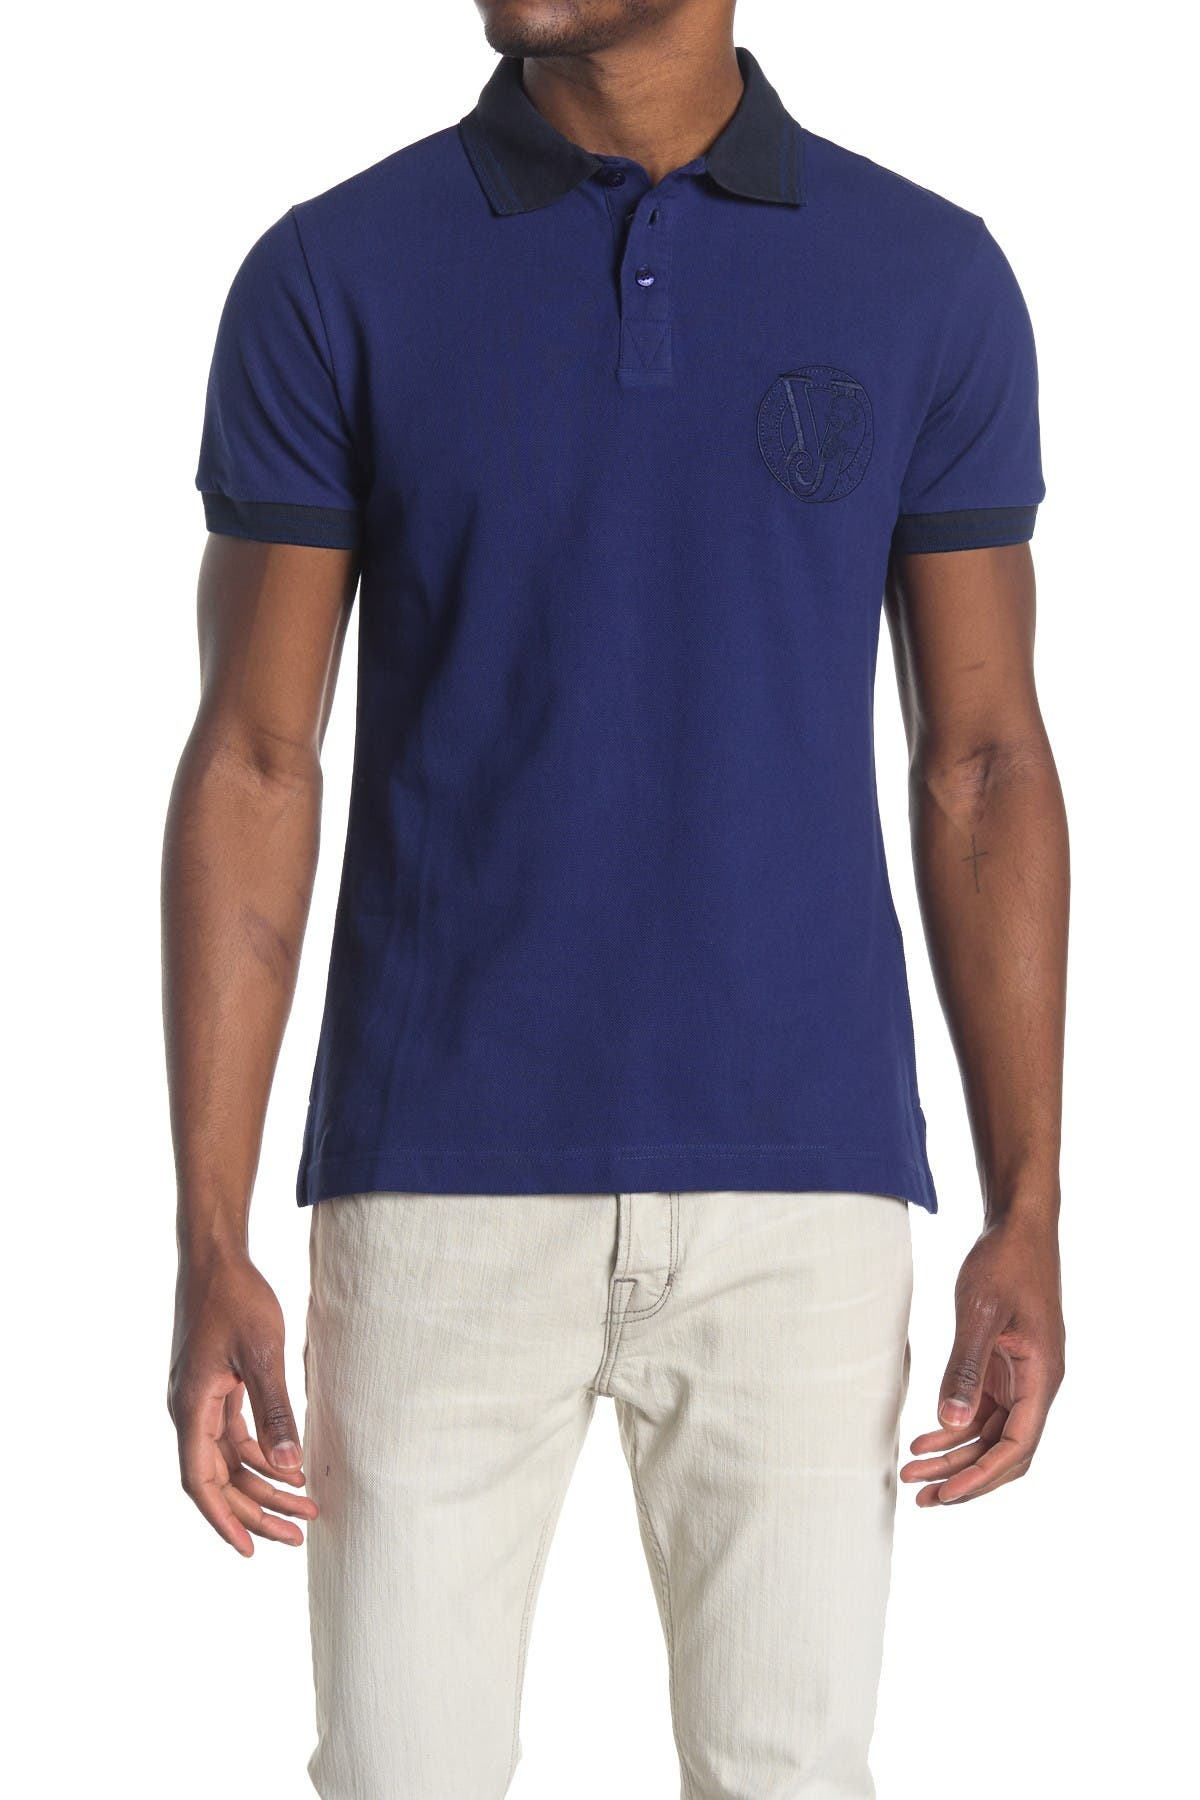 Image of Versace Jeans Accent Polo Shirt